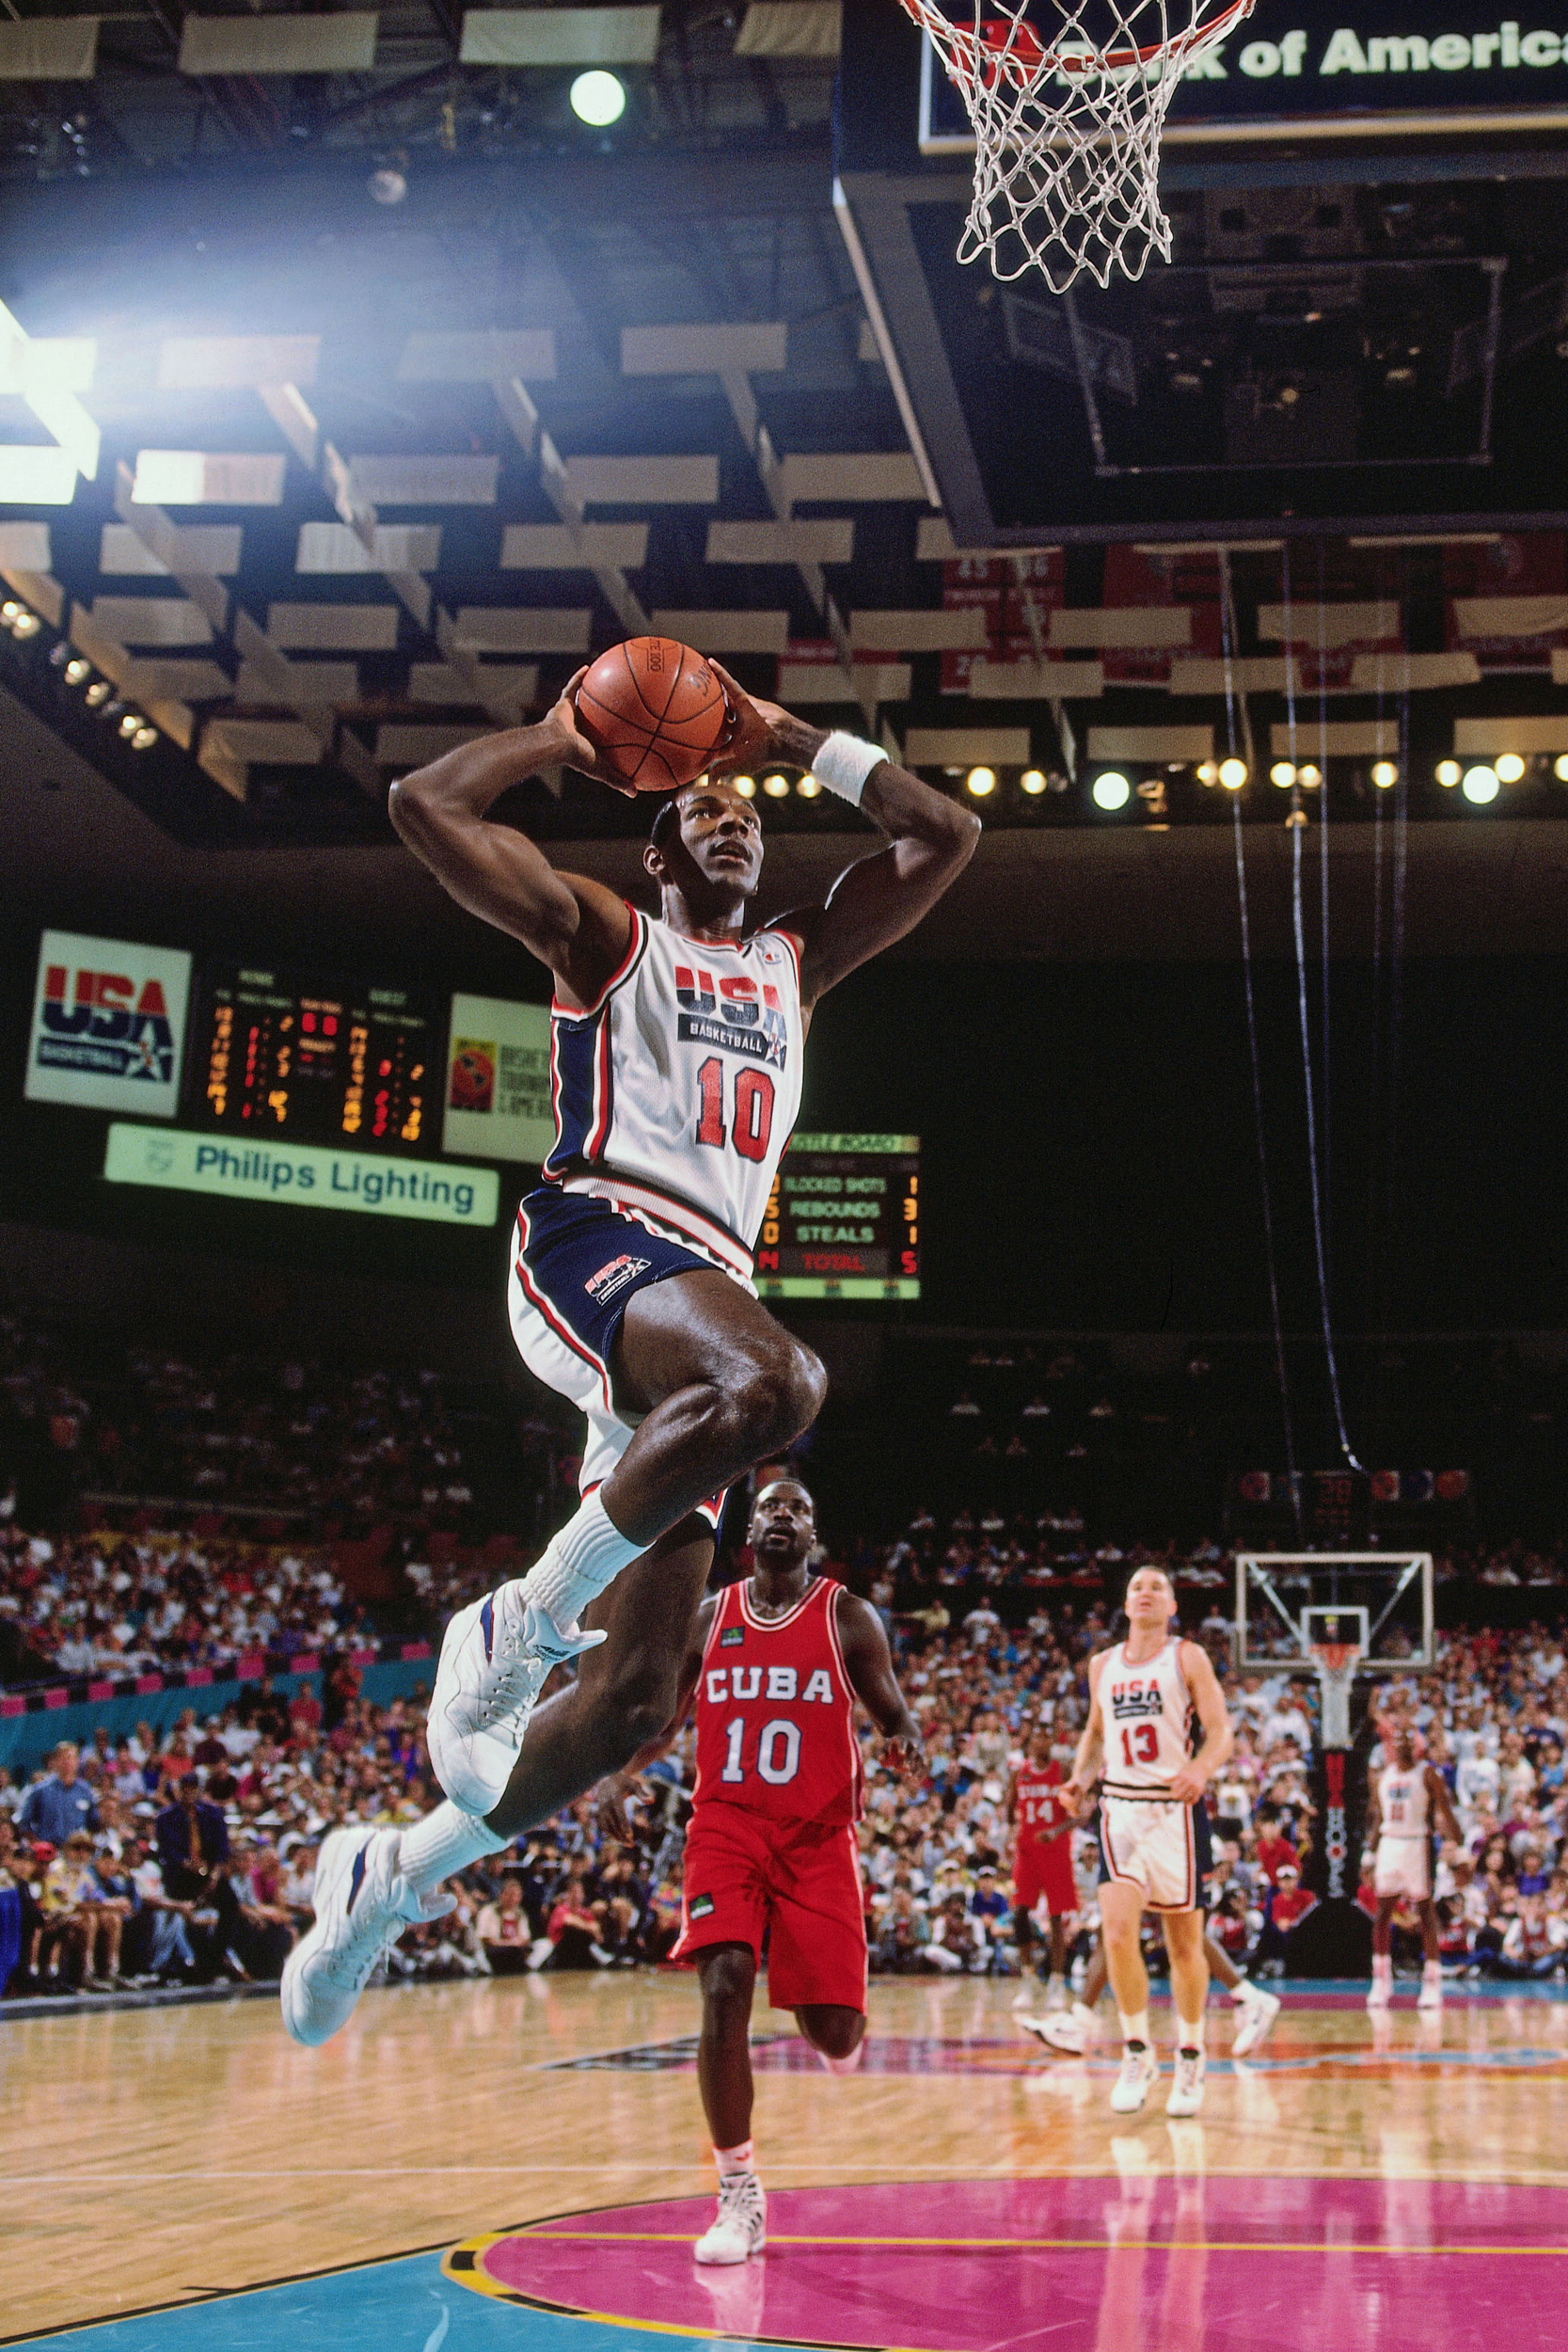 88a11340692148 Clyde Drexler of the United States dunks against Cuba during the Basketball  Tournament of the Americas on June 28